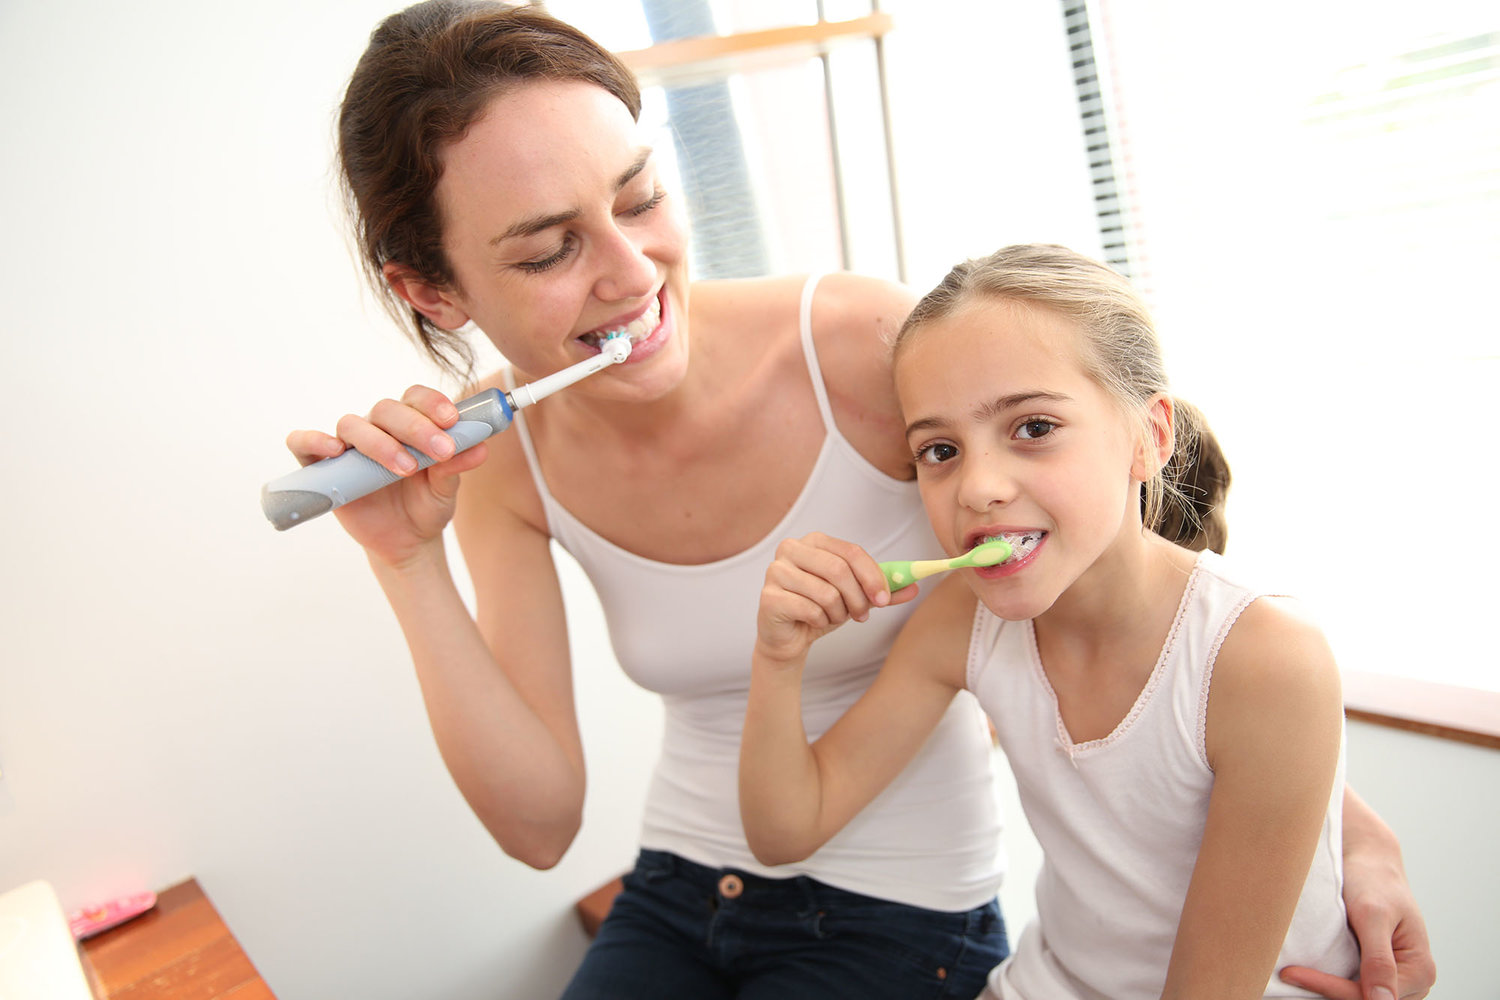 Brushing Your Teeth Too Soon After a Meal